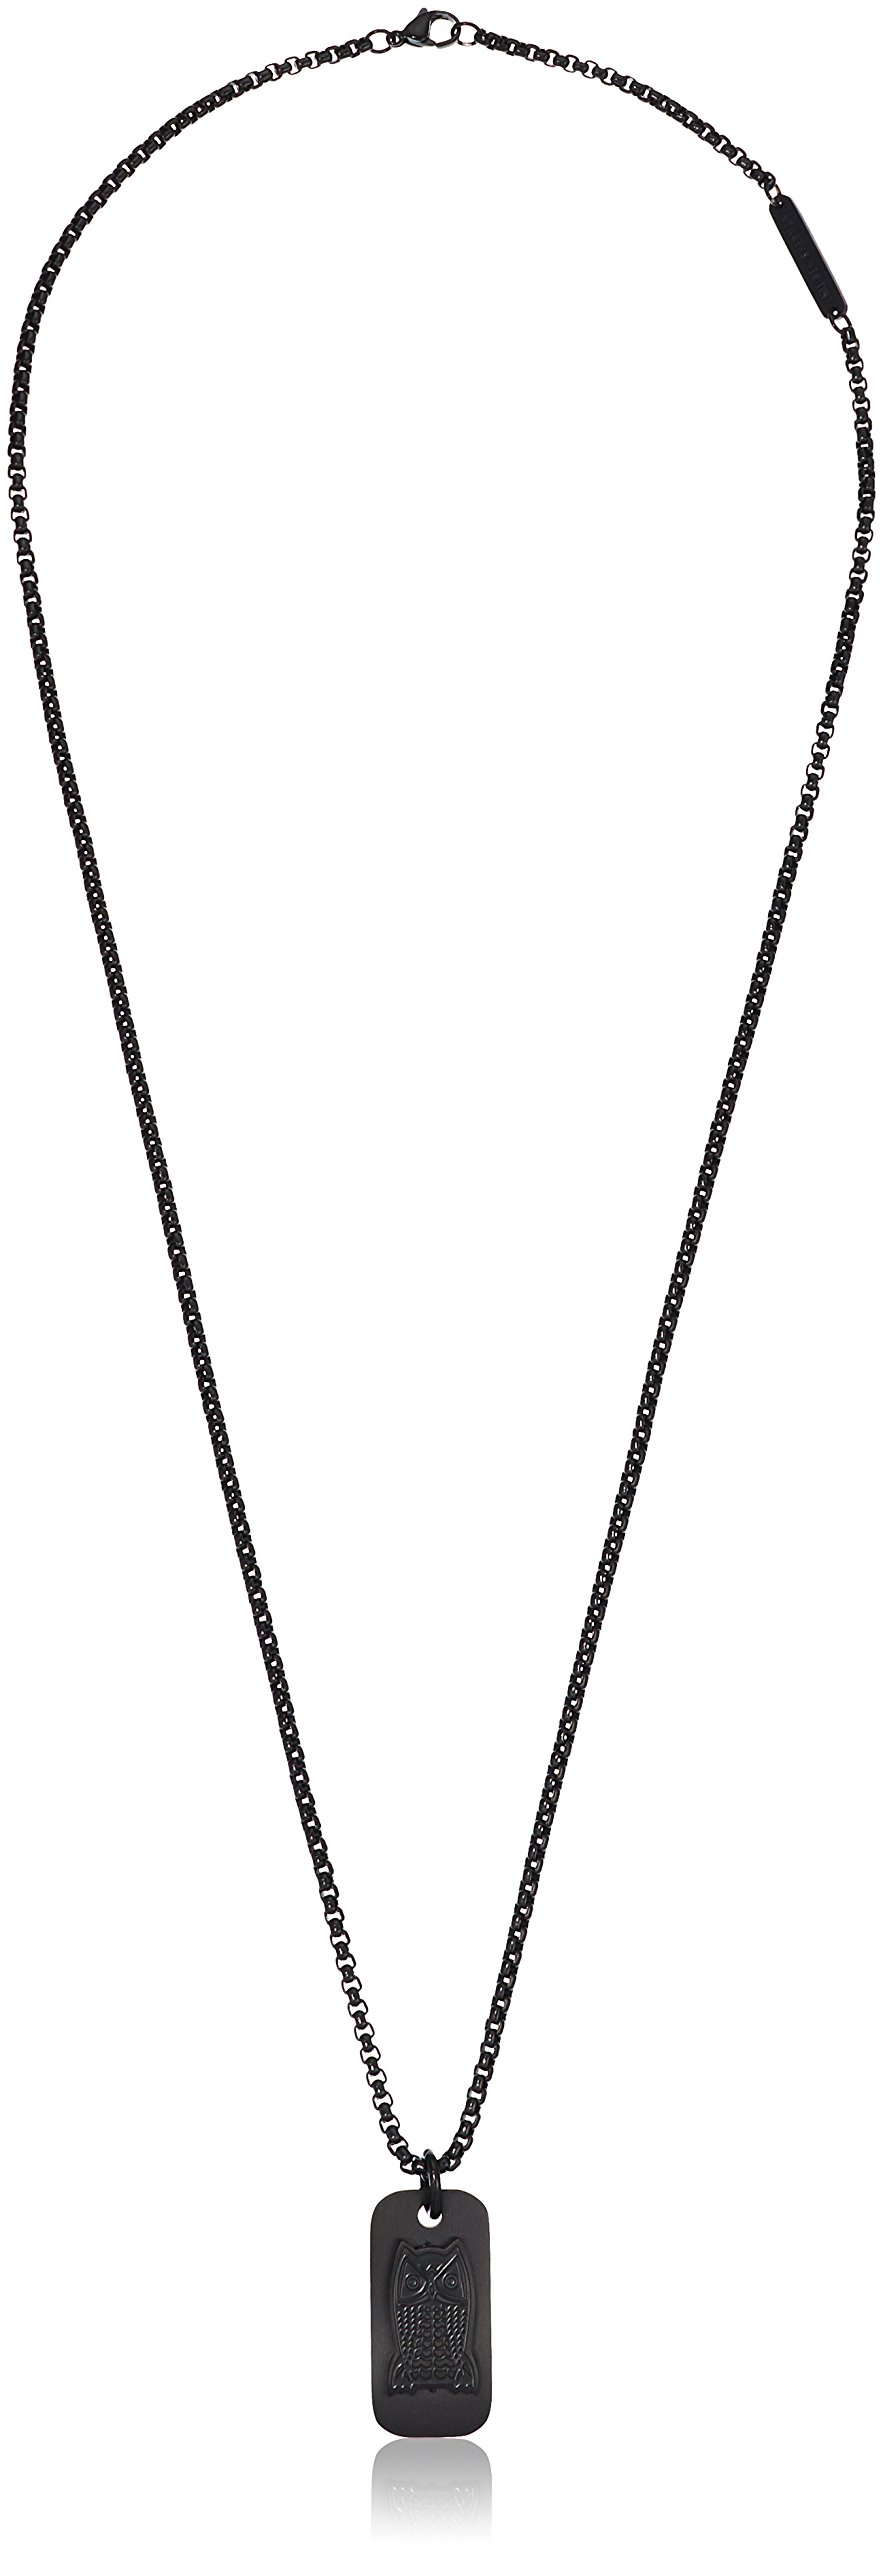 Ben Sherman Men's Black Owl Dog Tag Necklace with Stainless Steel Black IP Box Chain, 25